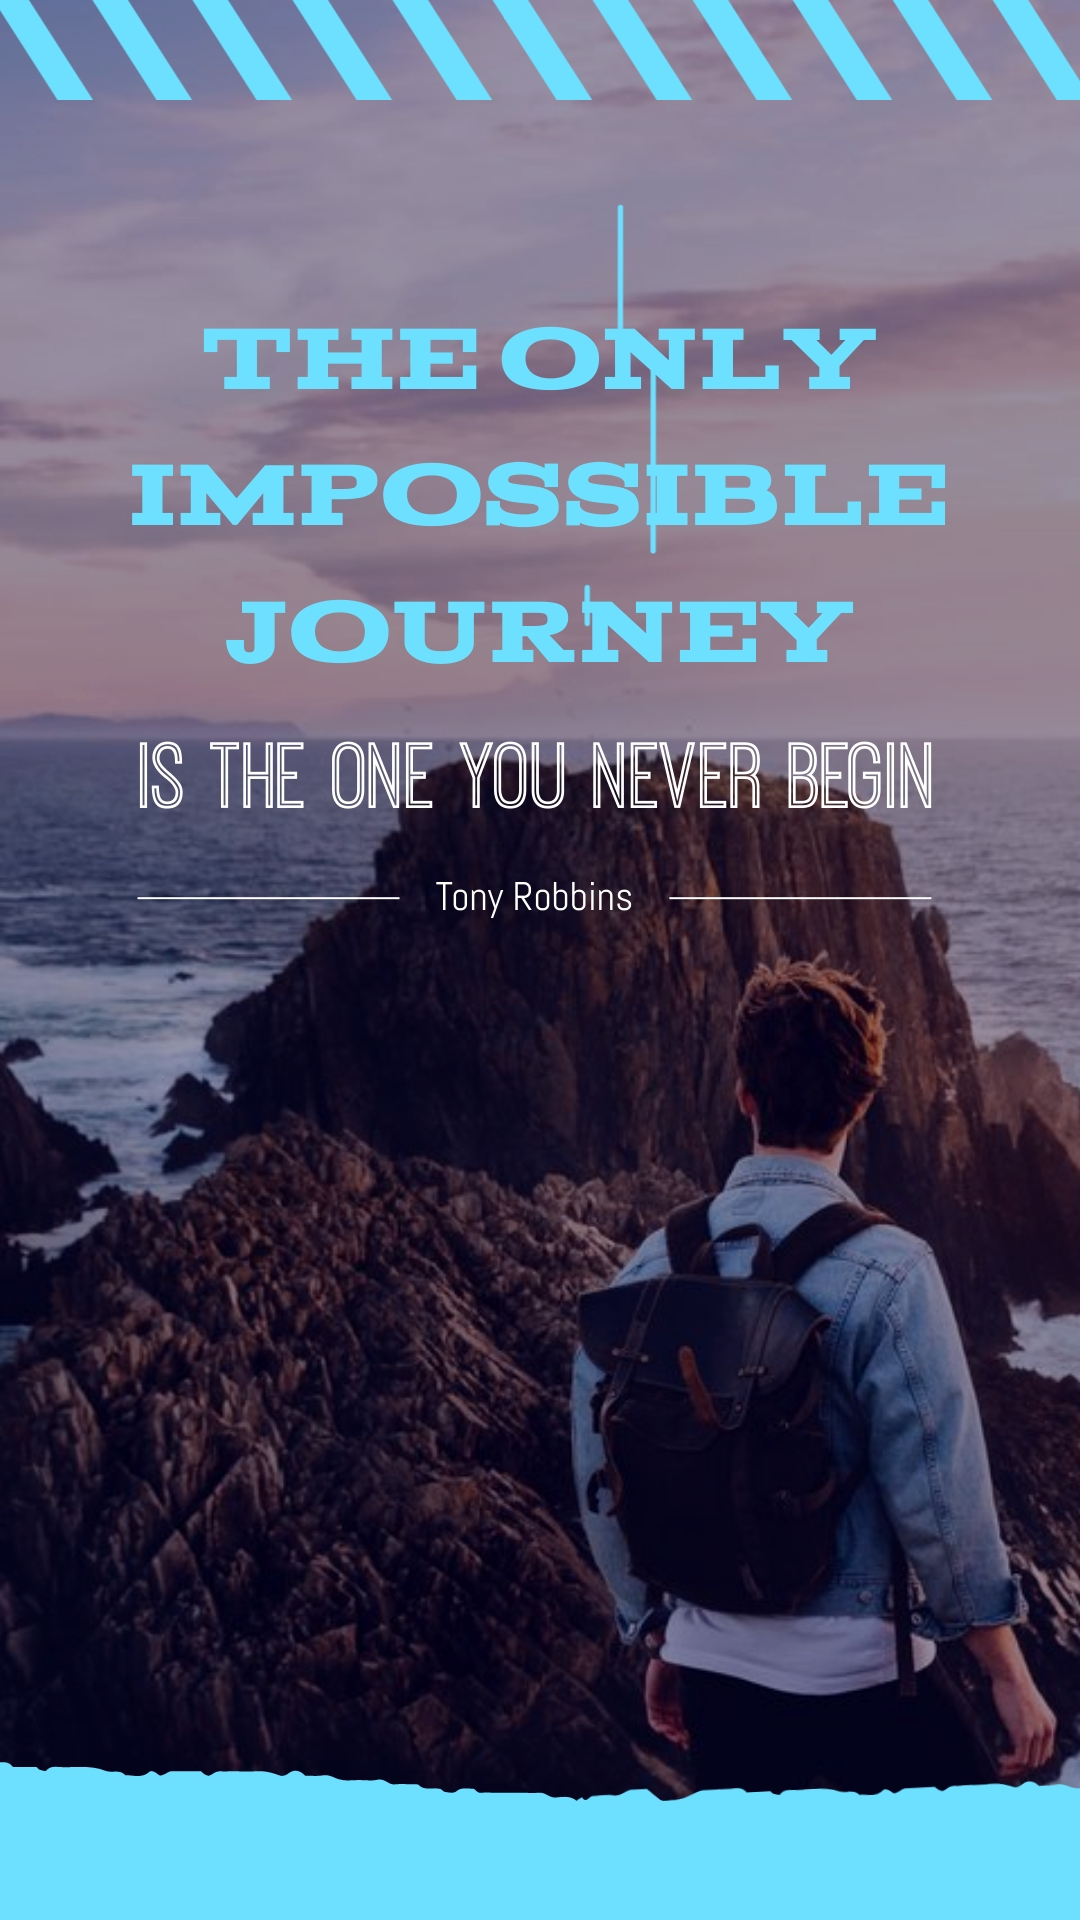 Tony Robbins Animated Quote Vertical Template